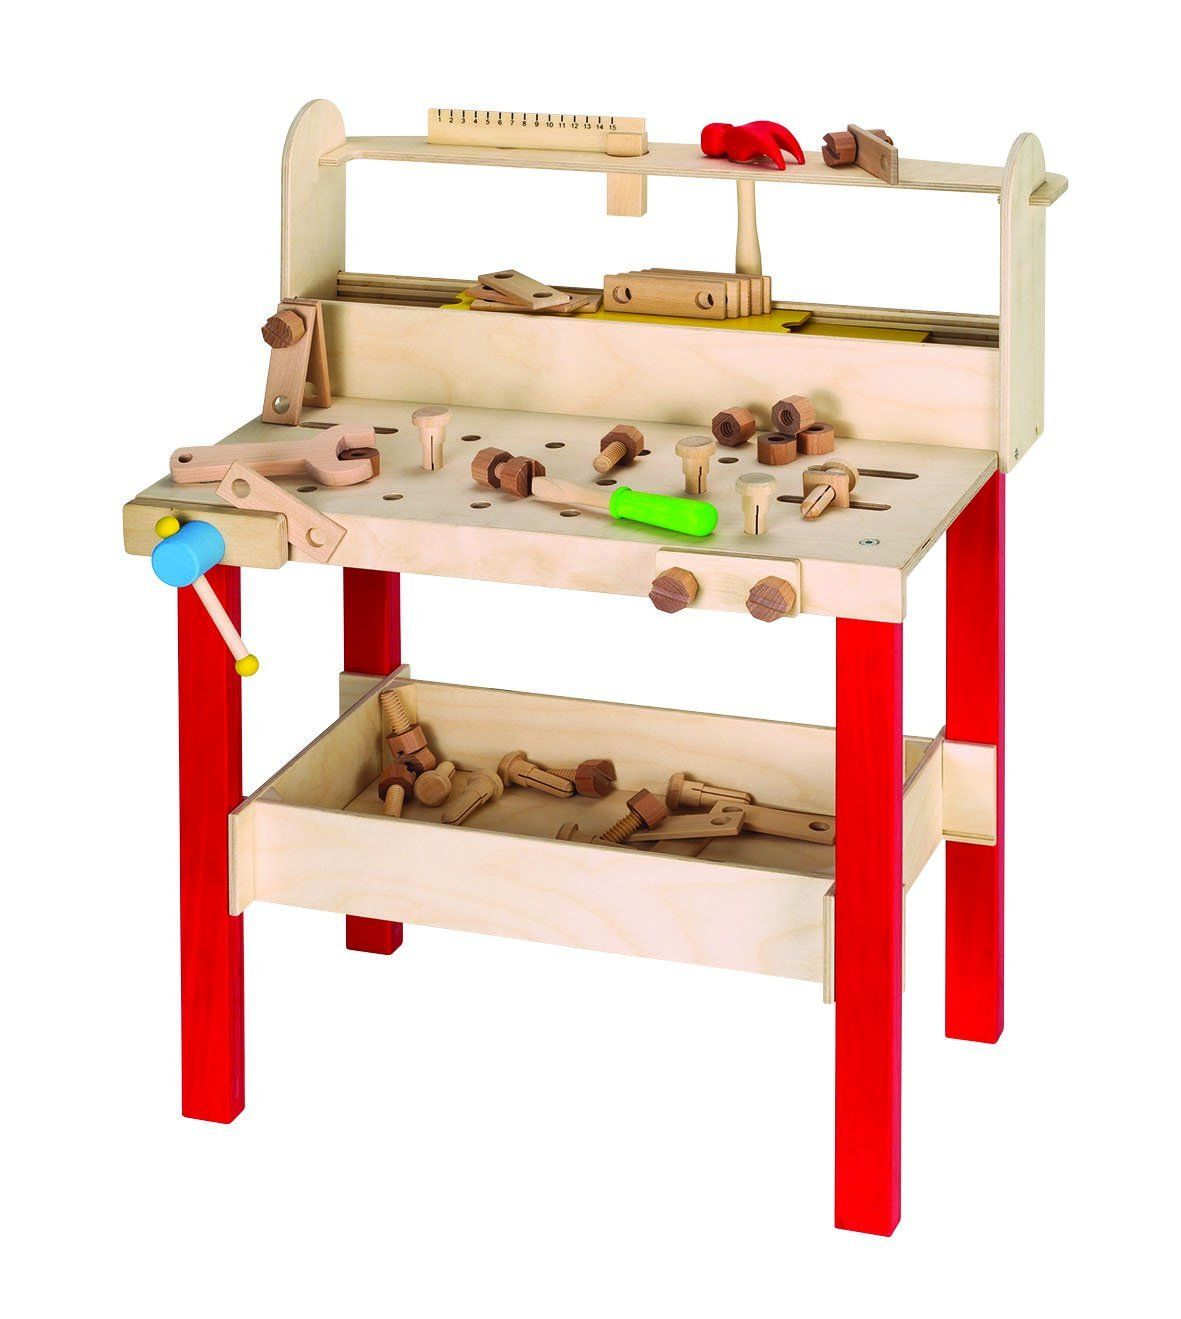 some more bench ideas | don's projects | kids workbench